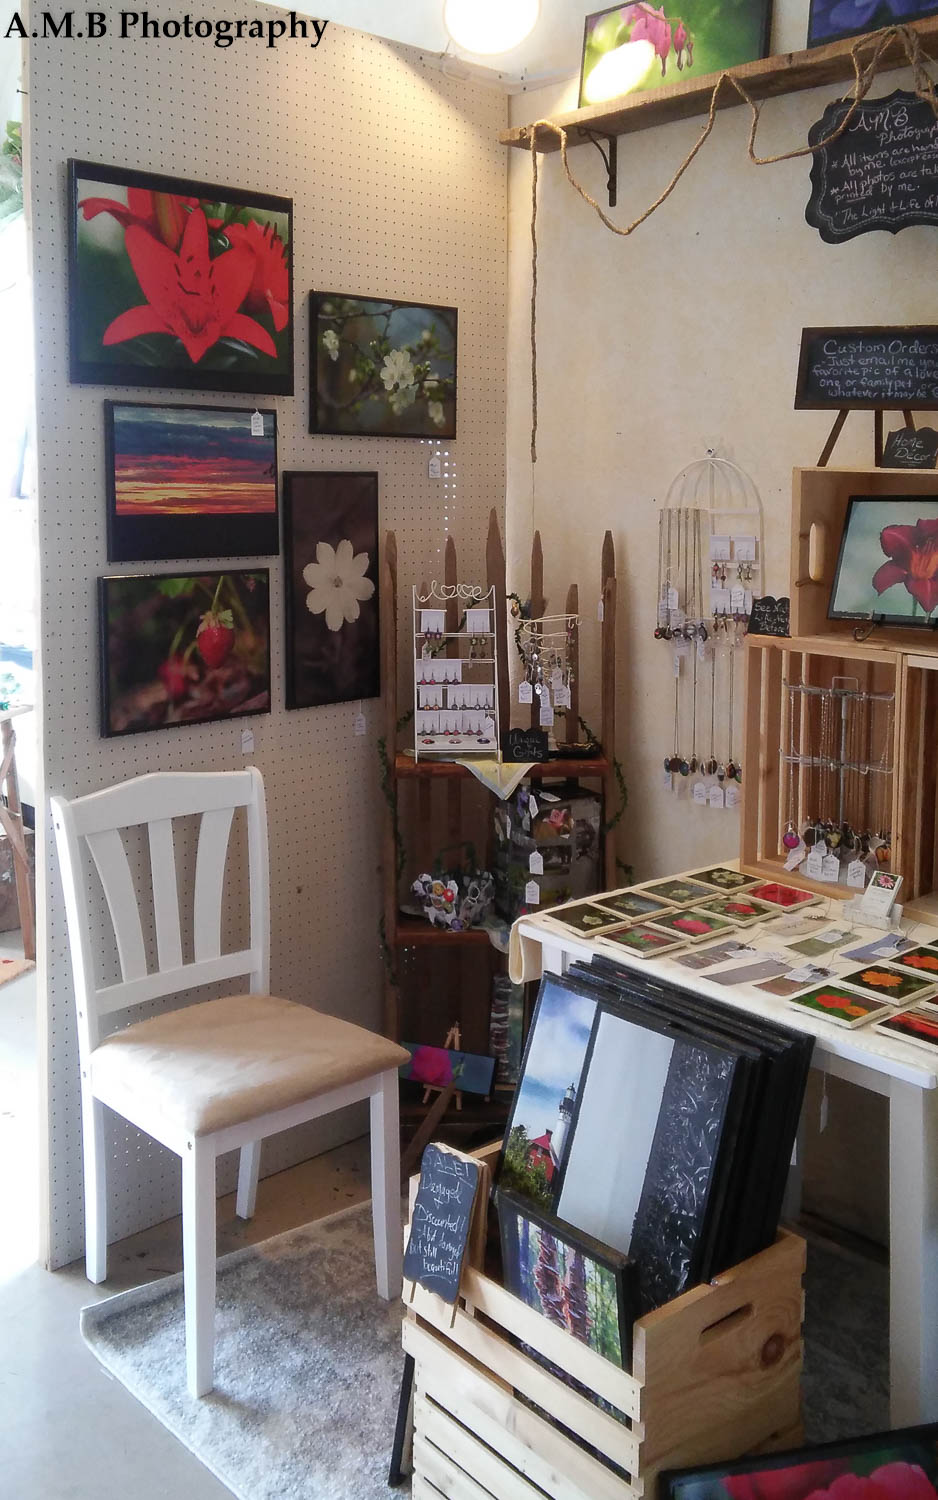 Kountry Nook - Large Booth IV